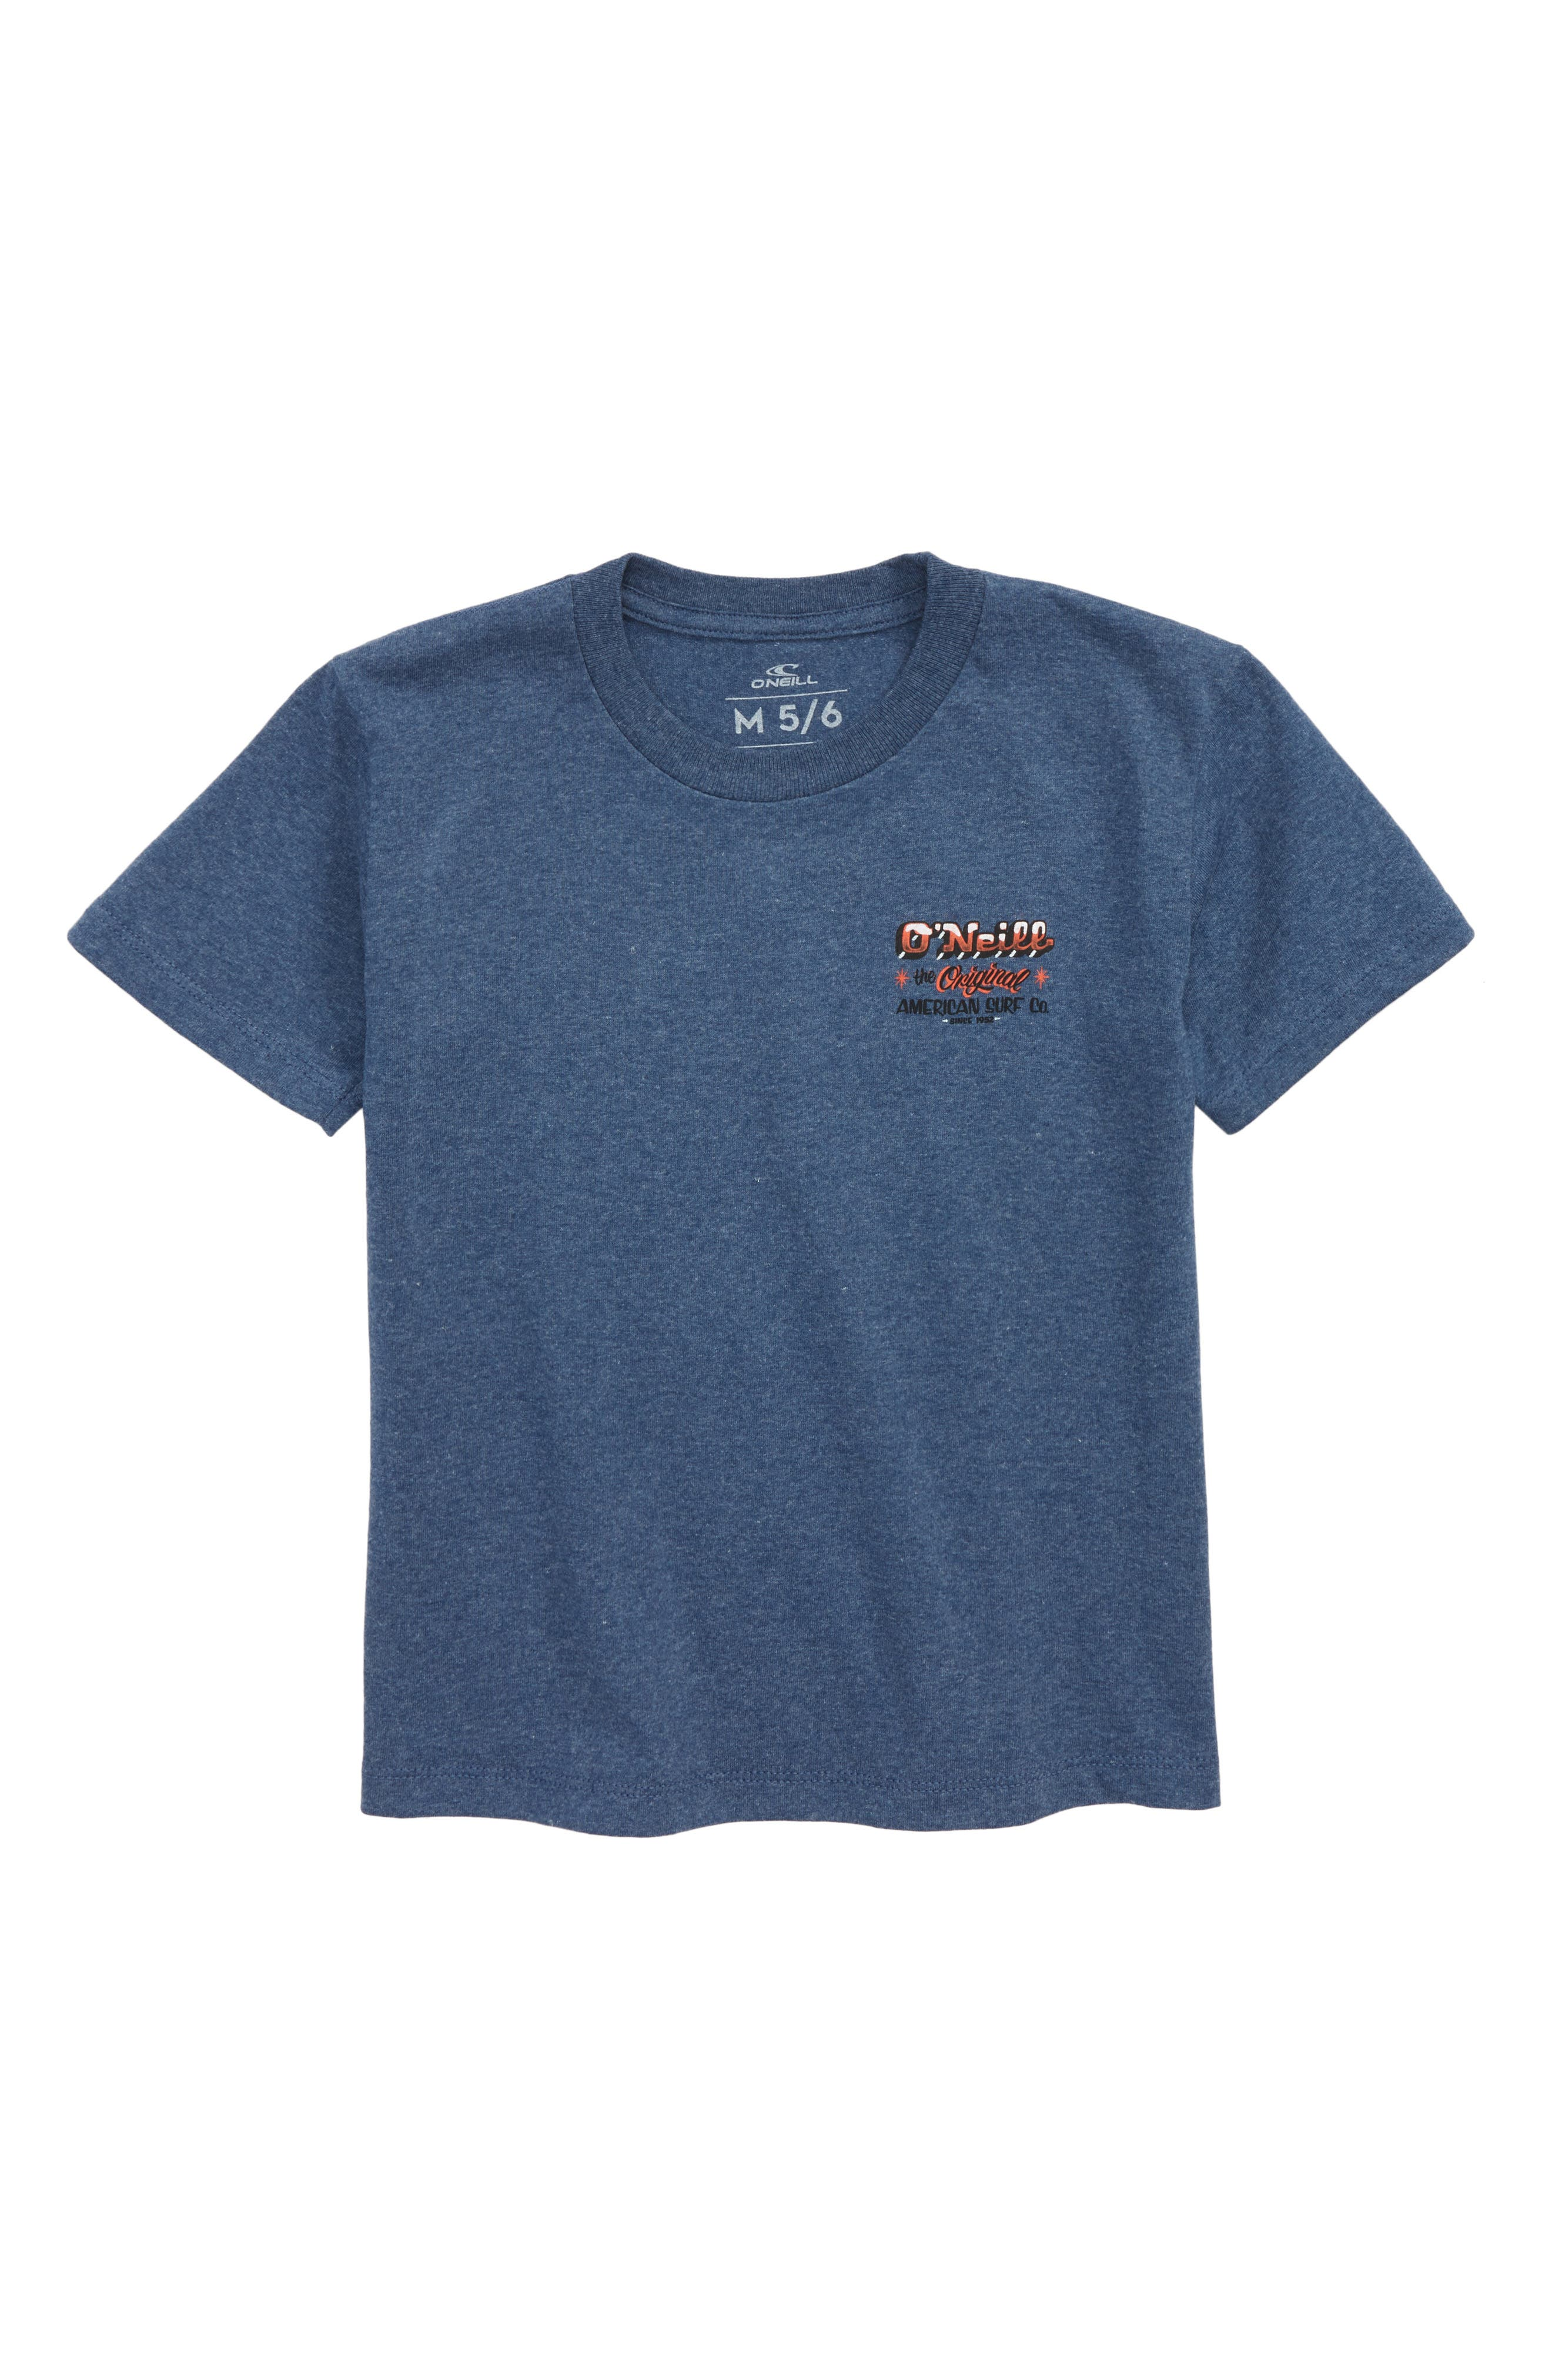 Tuki Graphic T-Shirt,                         Main,                         color, Navy Heather